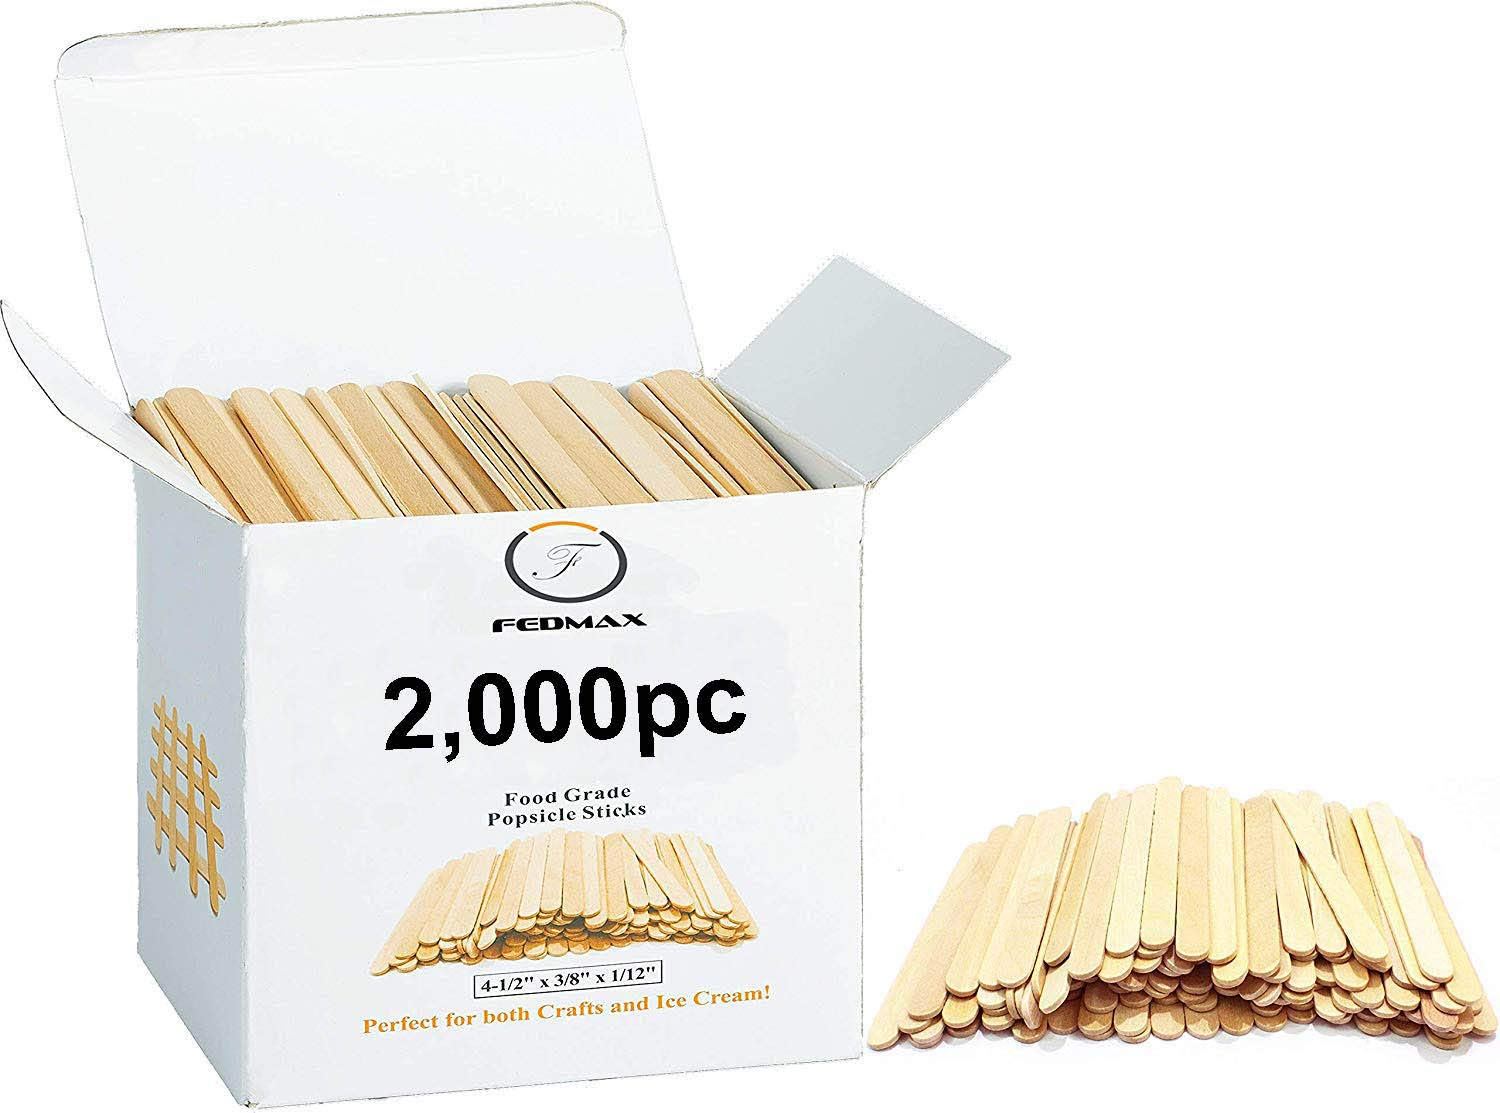 "Popsicle Sticks, (2,000pc), 4-1/2"" Length, Food Grade Wooden Ice Cream Sticks, Great Bulk Sticks for Crafts, by Fedmax. (2,000pc)"